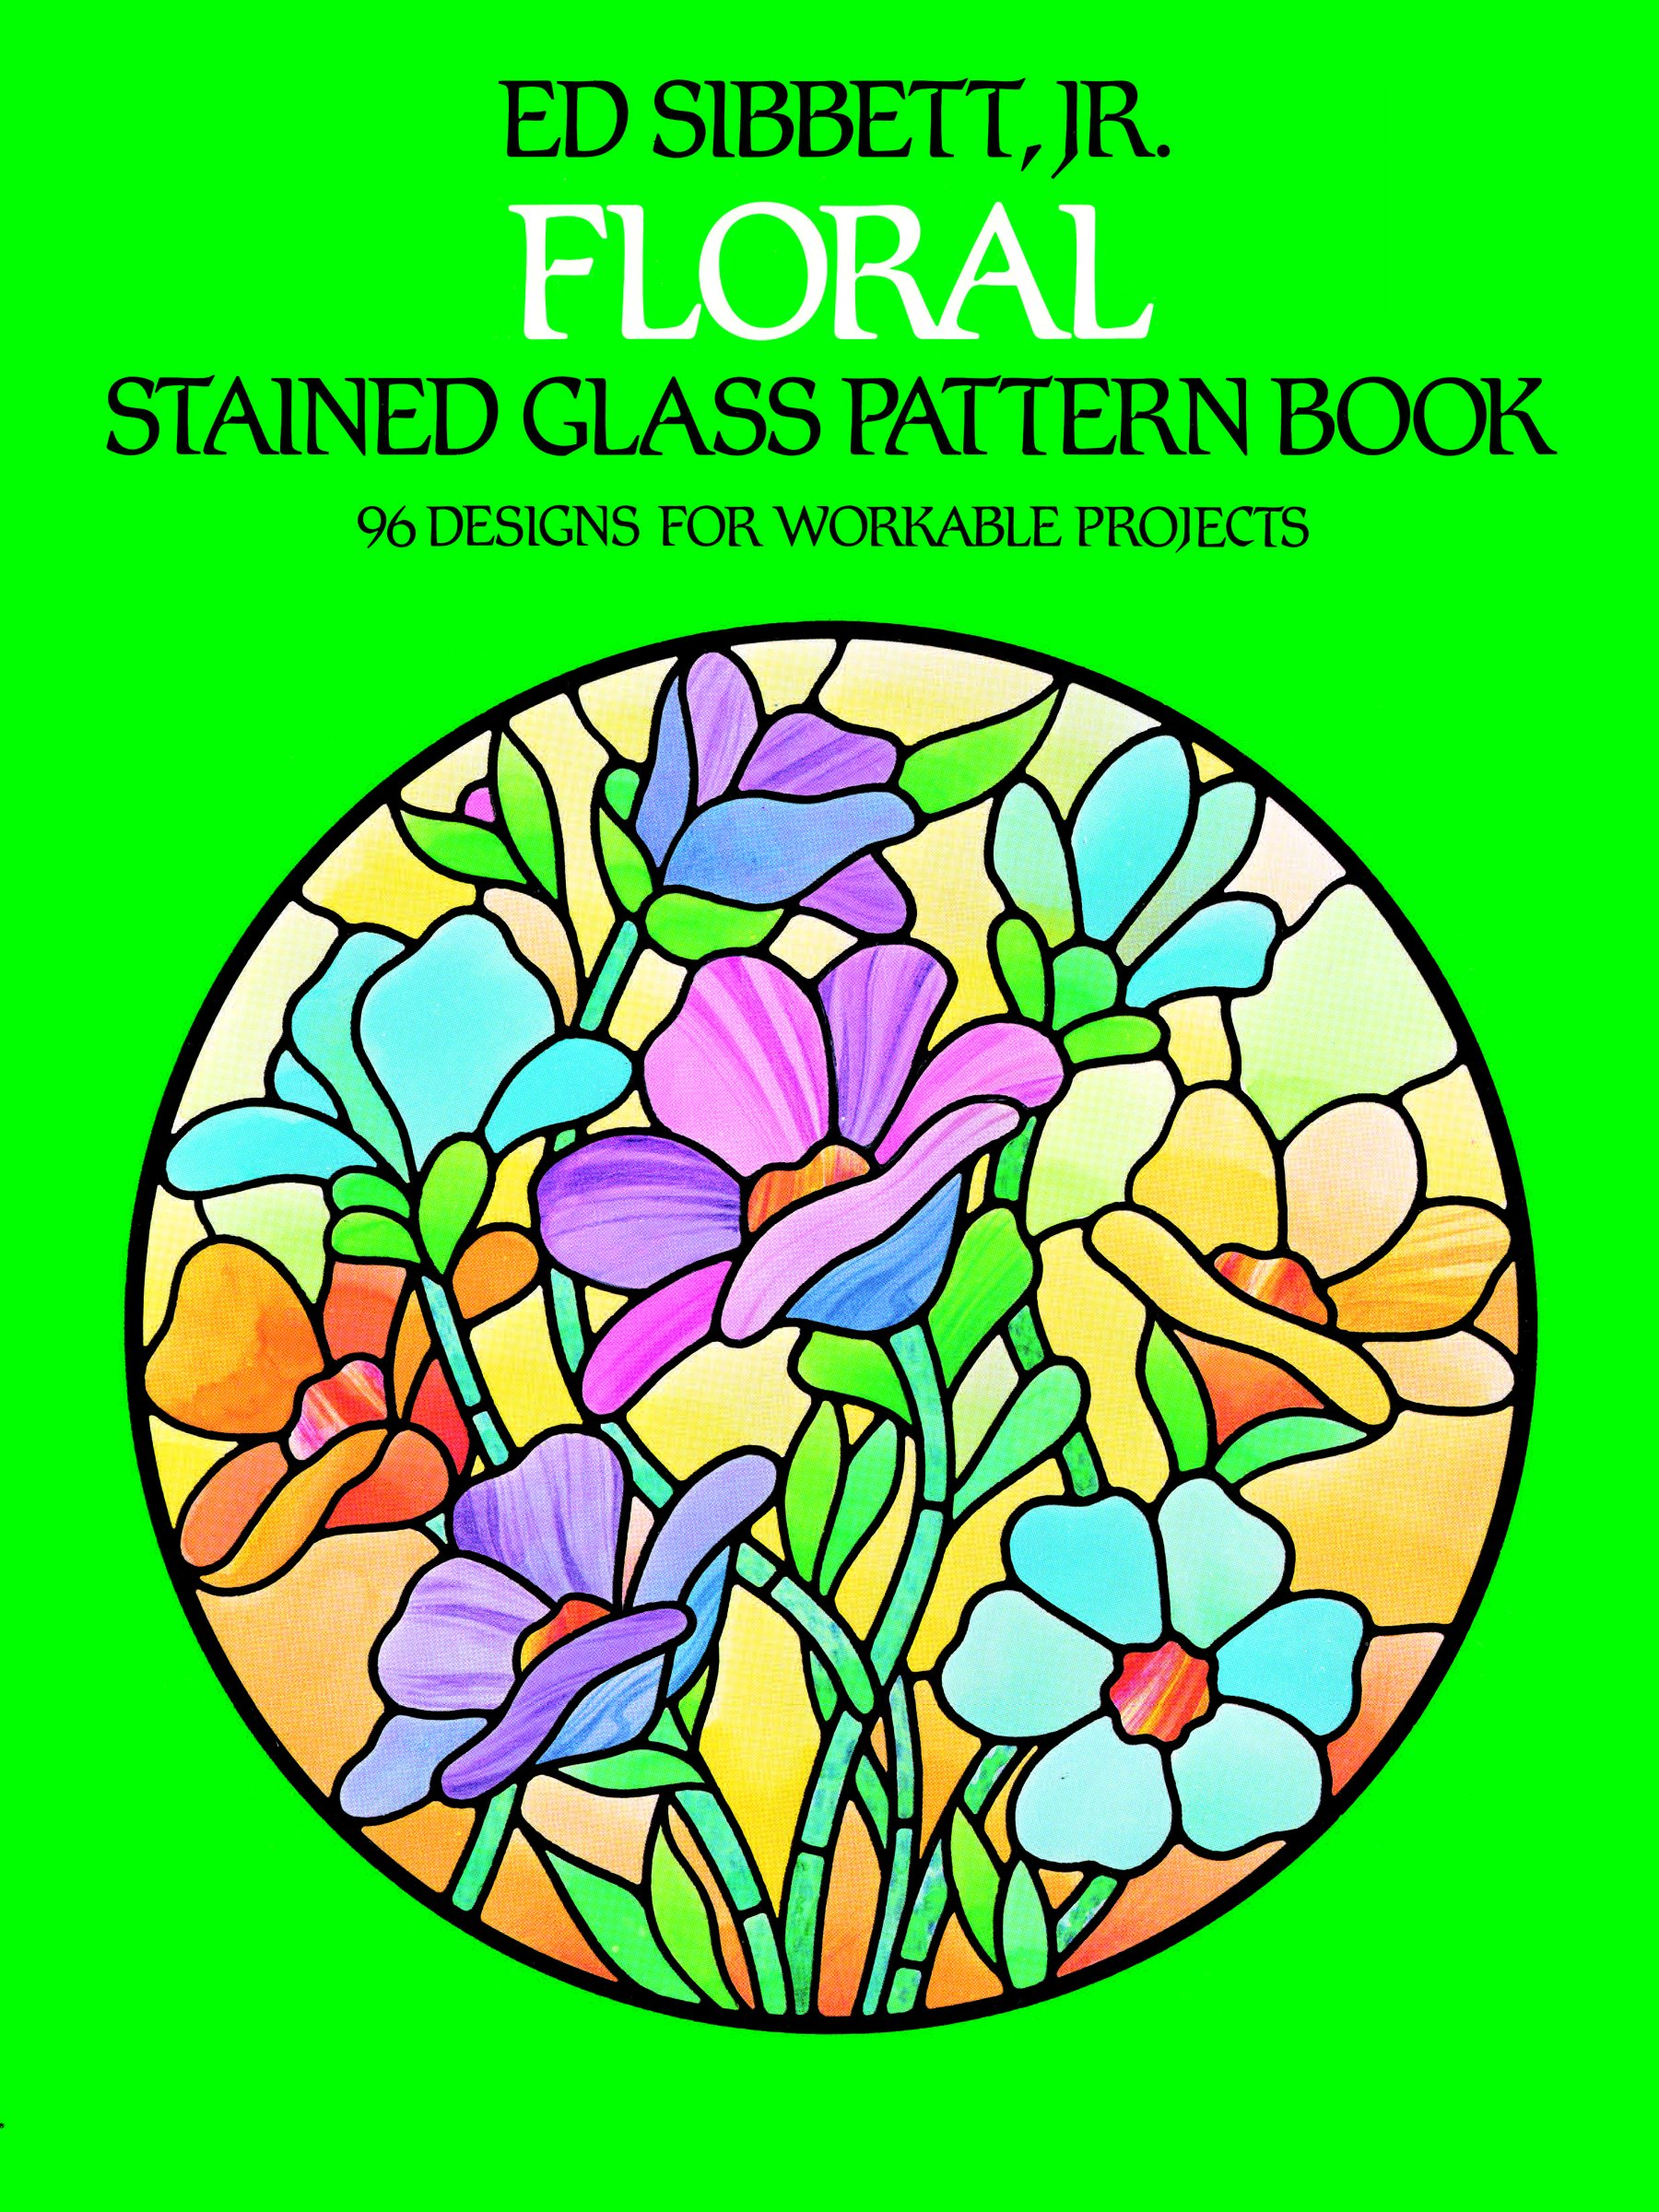 Amazon Com Floral Stained Glass Pattern Book Dover Stained Glass Instruction 0800759242597 Sibbett Jr Ed Books